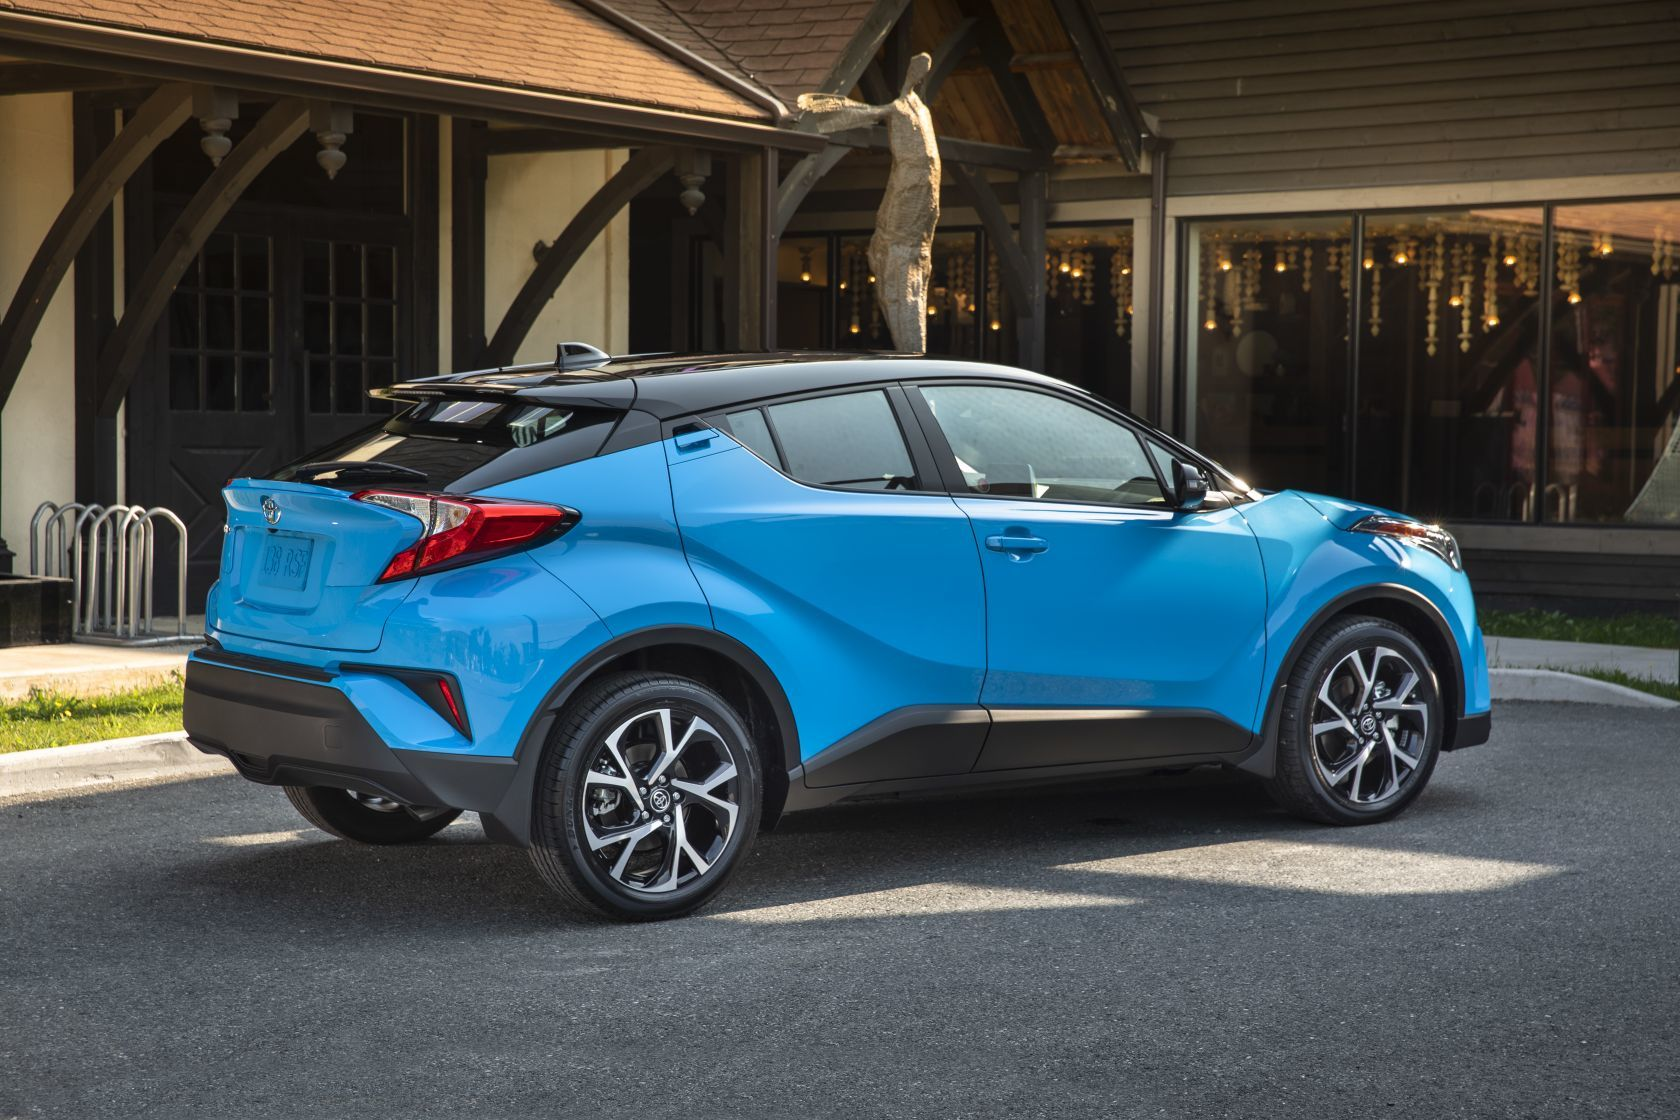 Toyota Service Appointment >> The Improved 2019 Toyota C-HR by - Kingston Toyota in Kingston